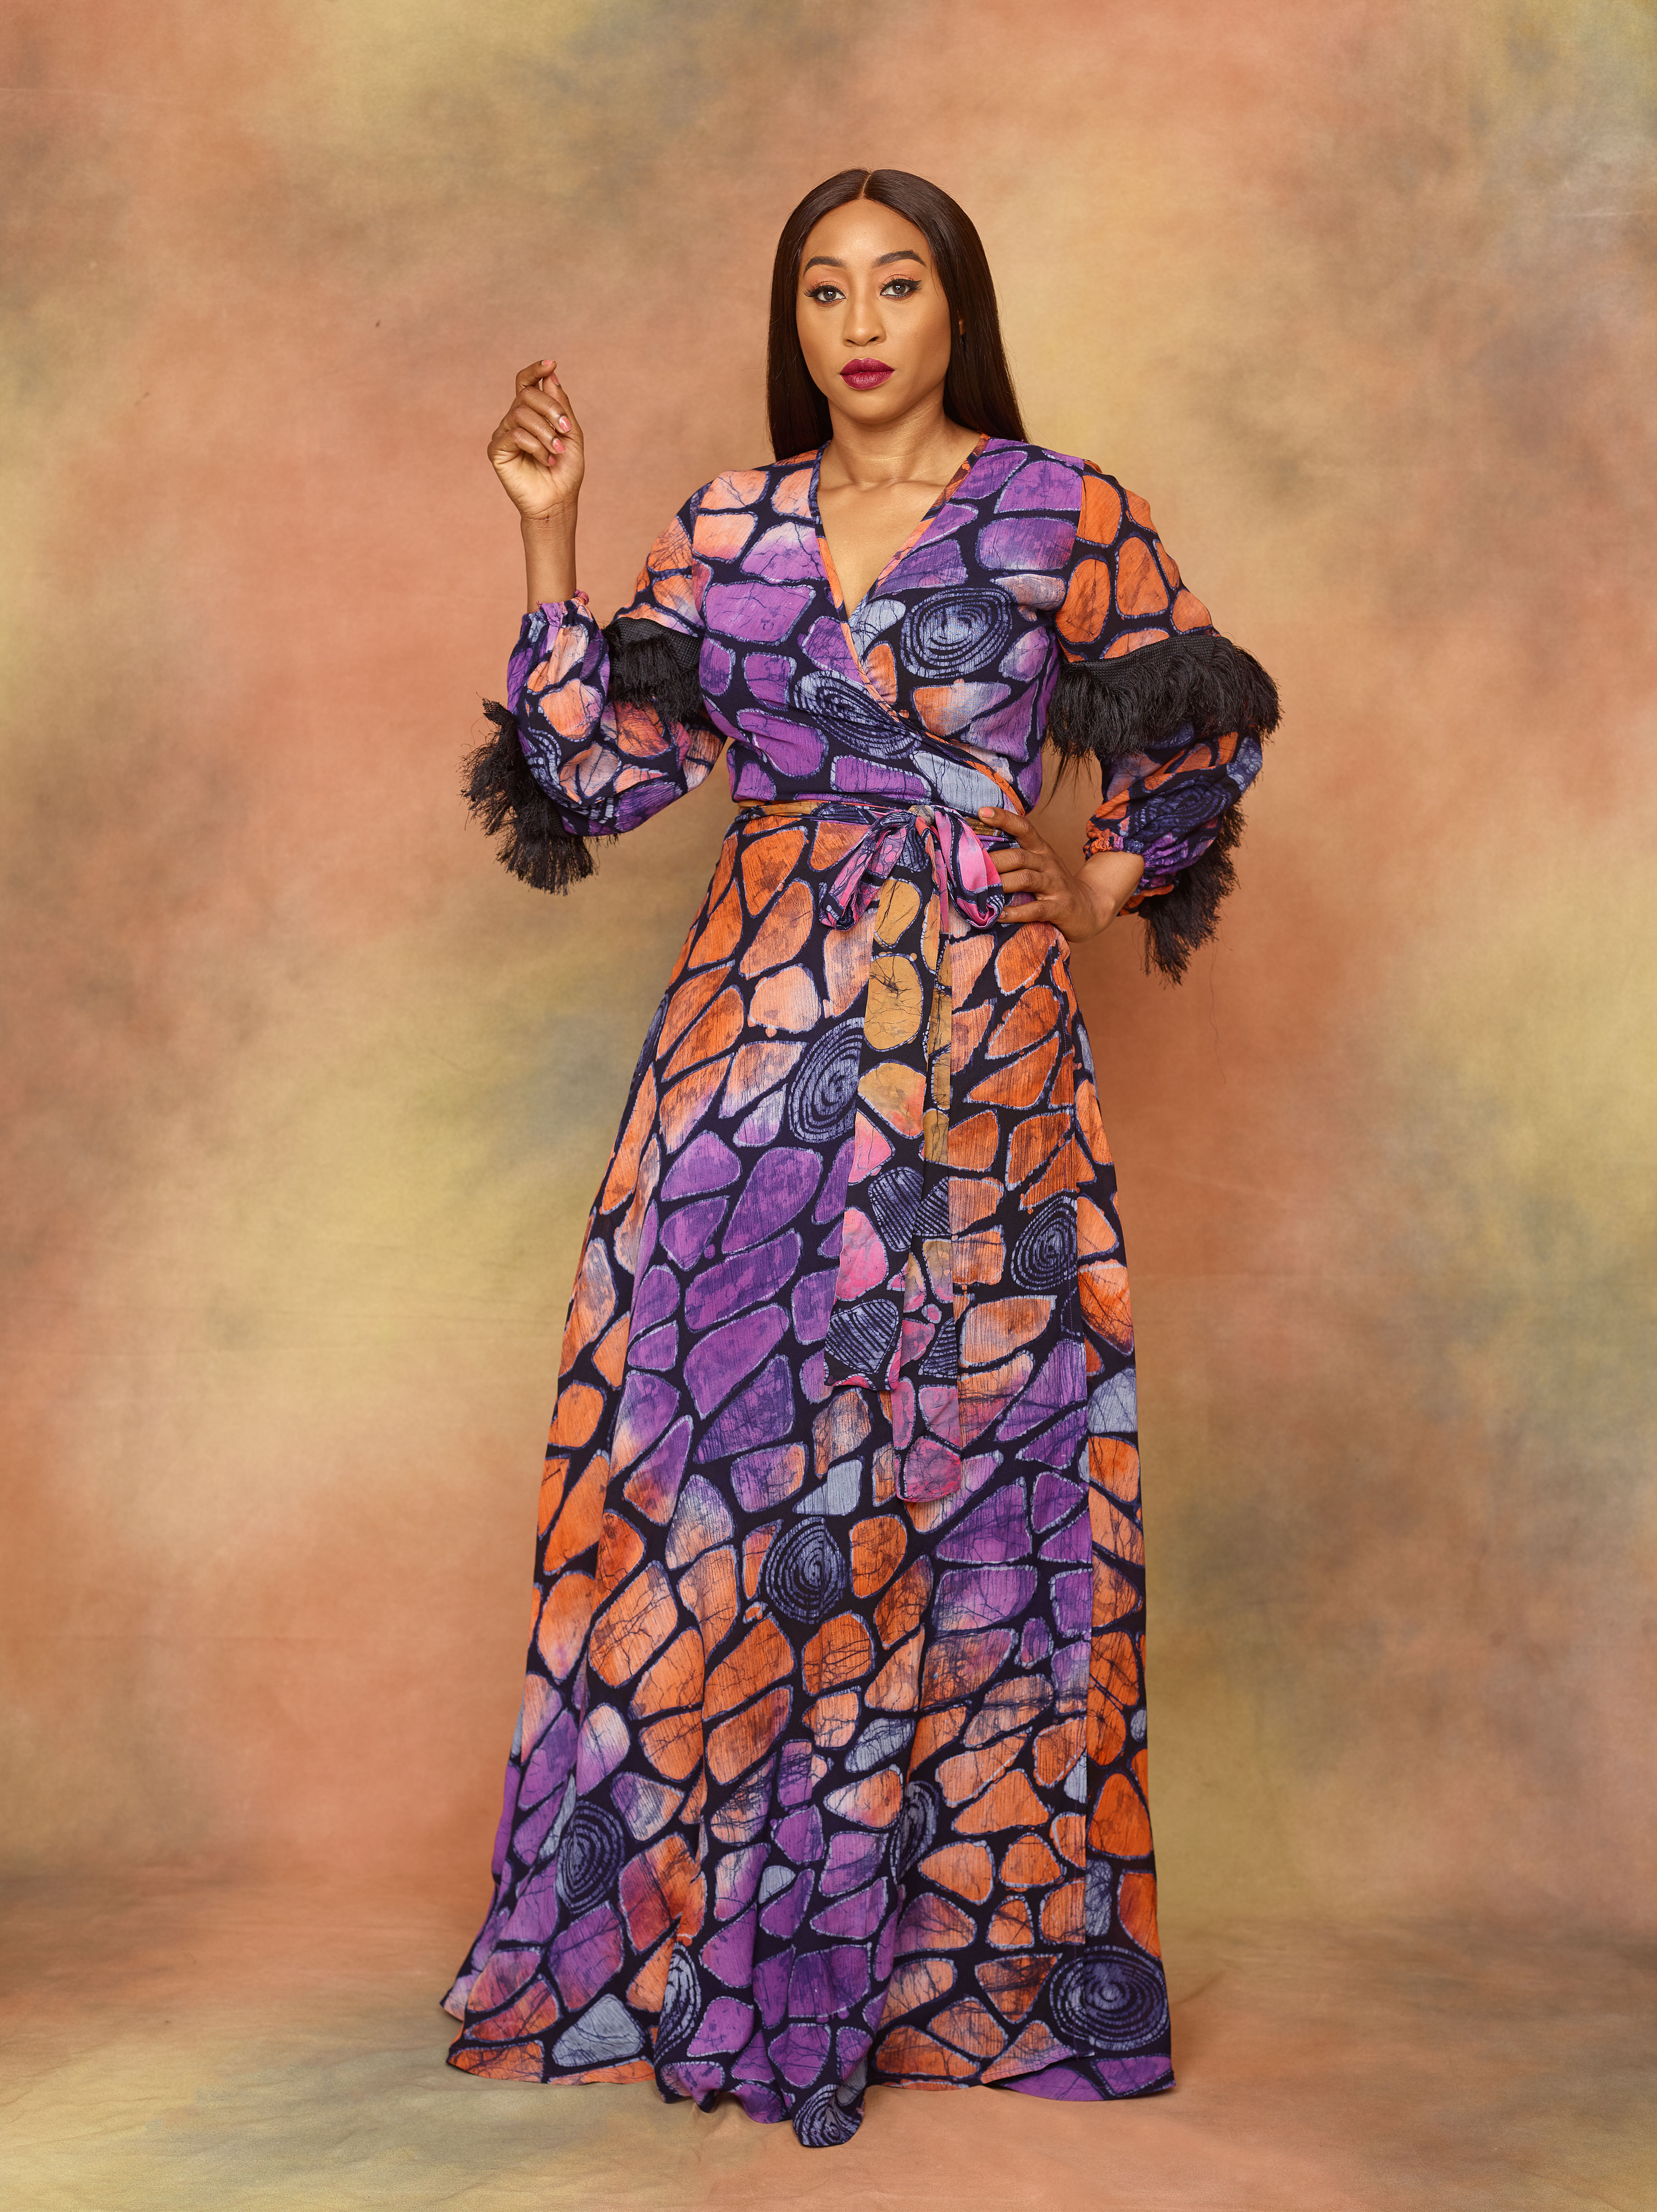 Veronica Odeka Stars in Funke Adepoju's Latest Collection Campaign for the Adunni Capsule Collection